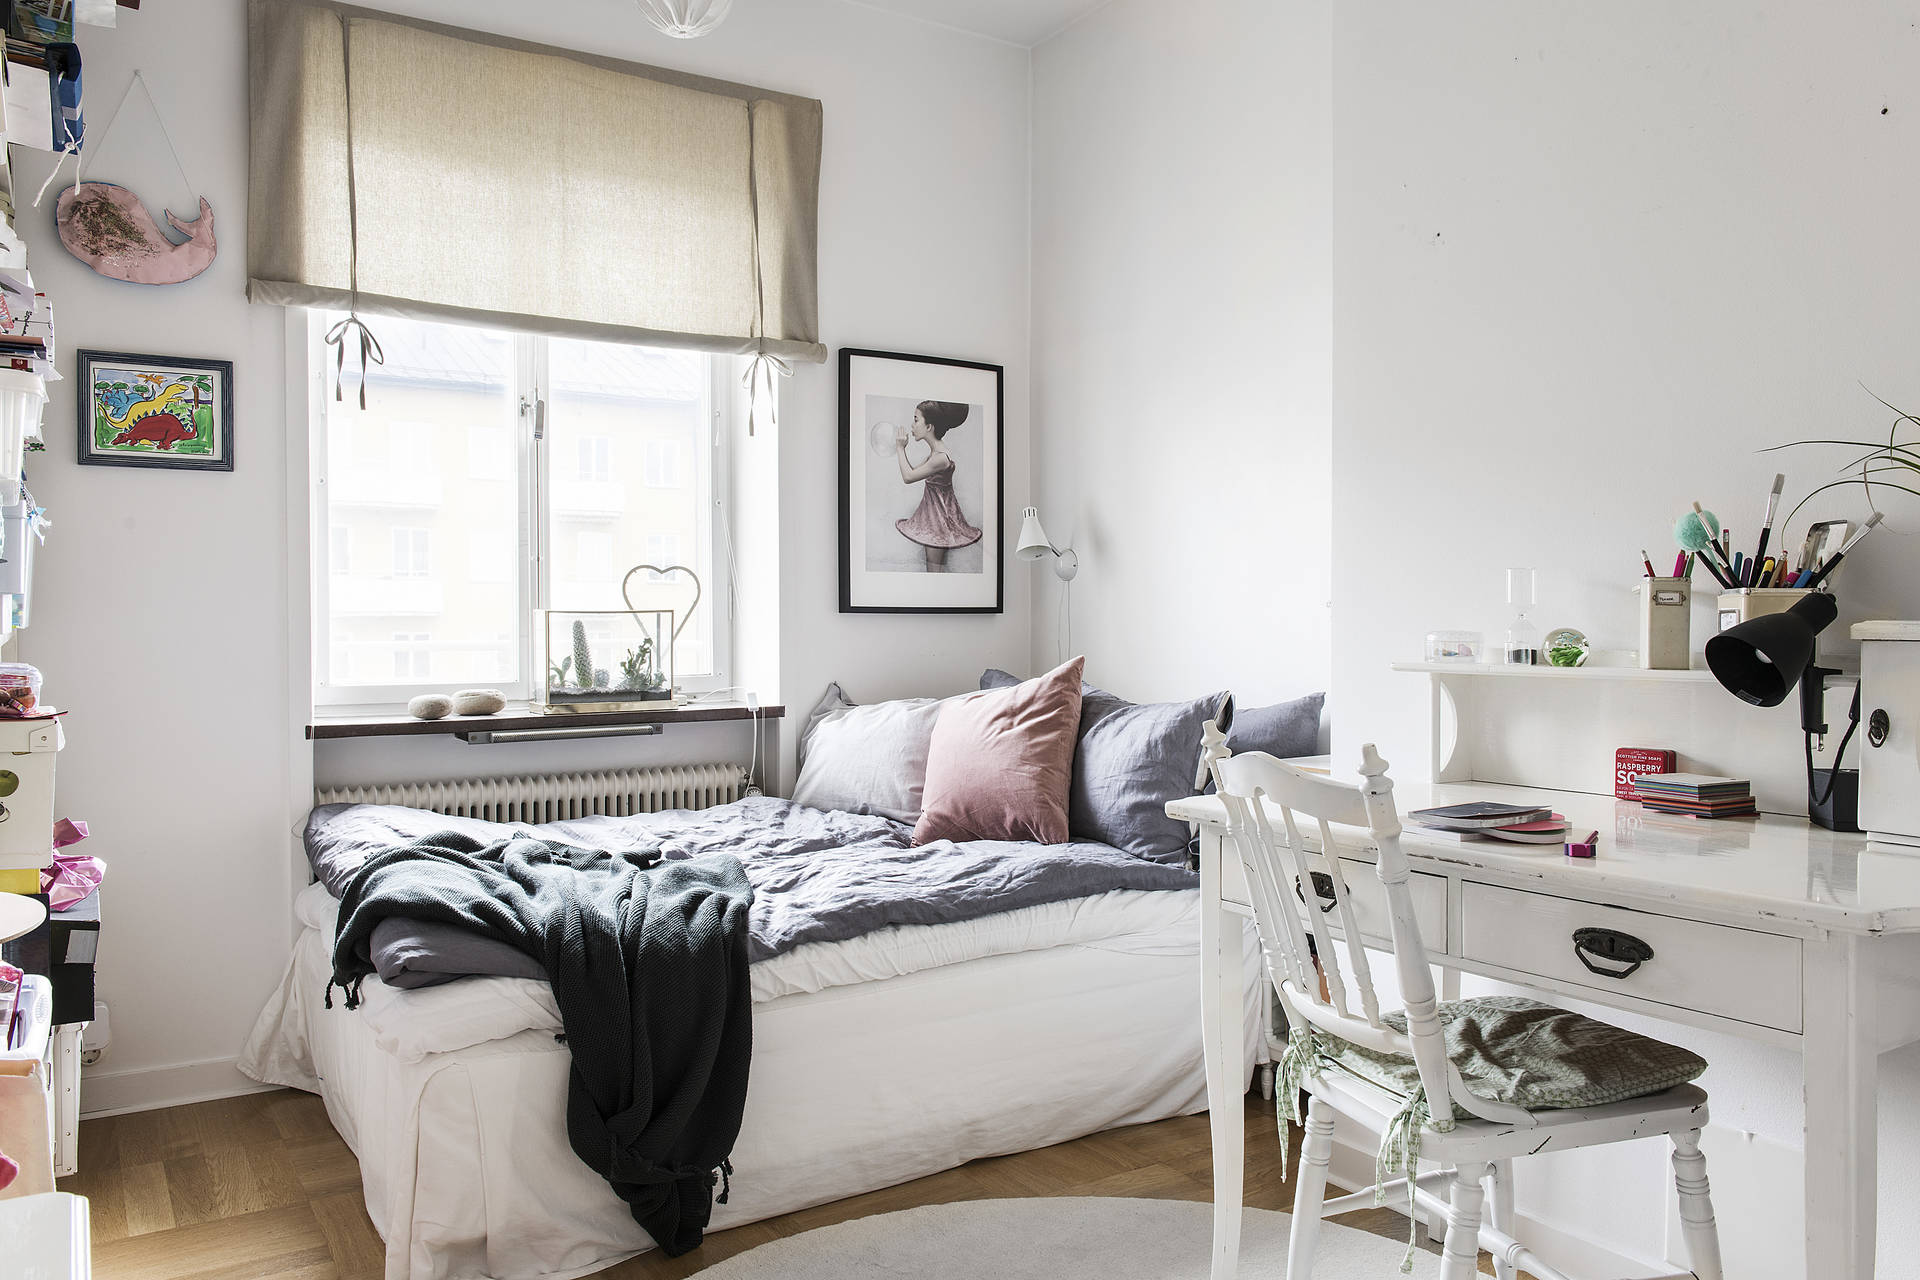 The monochromatic colour scheme continues in the other bedroom with just enough pink accents to let you know that a girl lives here.